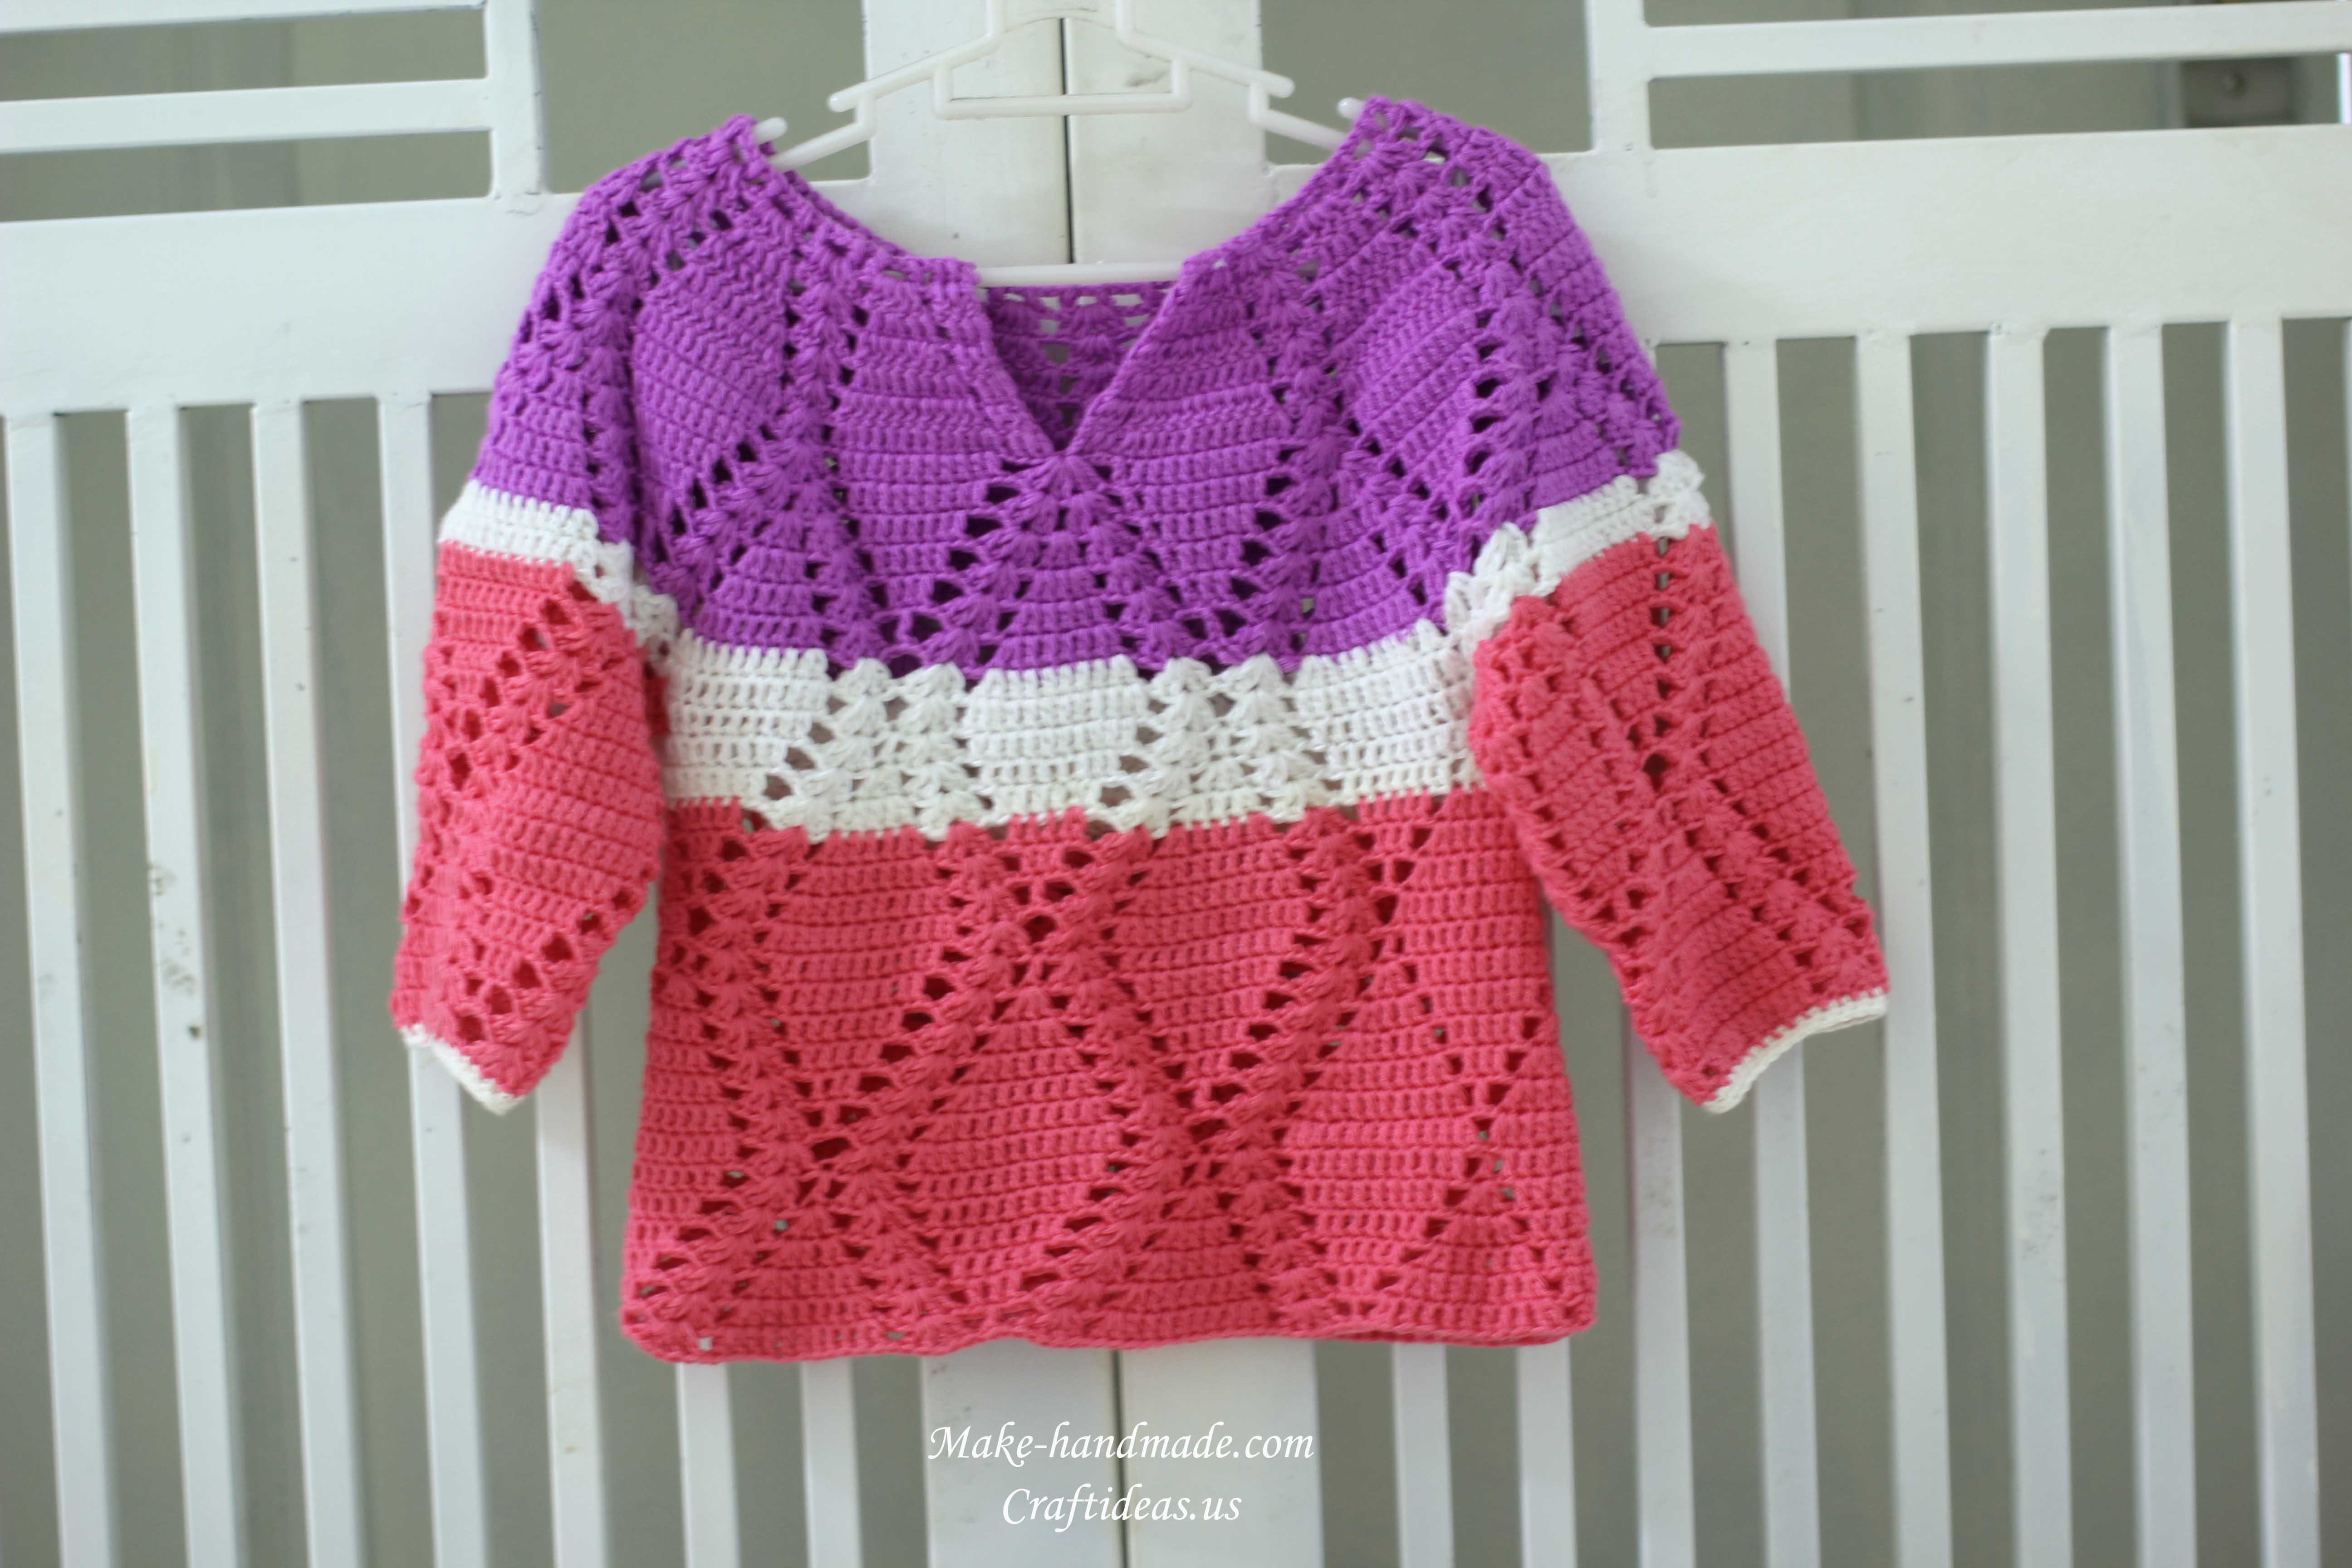 Crochet toddler Sweaters Beautiful Crochet Diamond Shapes for Baby Sweater Of Attractive 46 Pictures Crochet toddler Sweaters